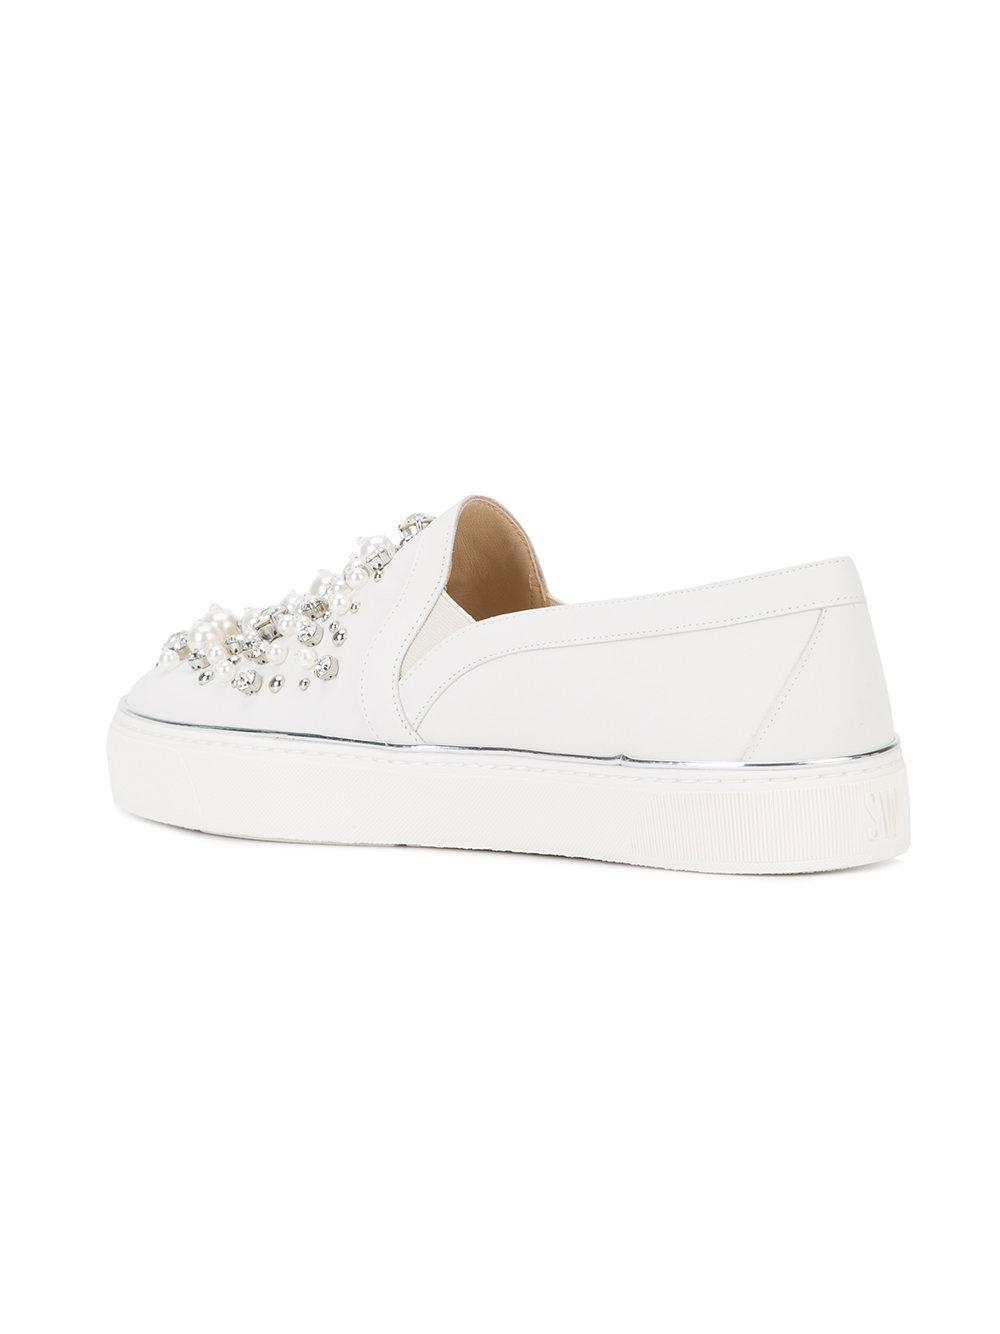 Stuart Weitzman Leather Embellished Sneakers in White